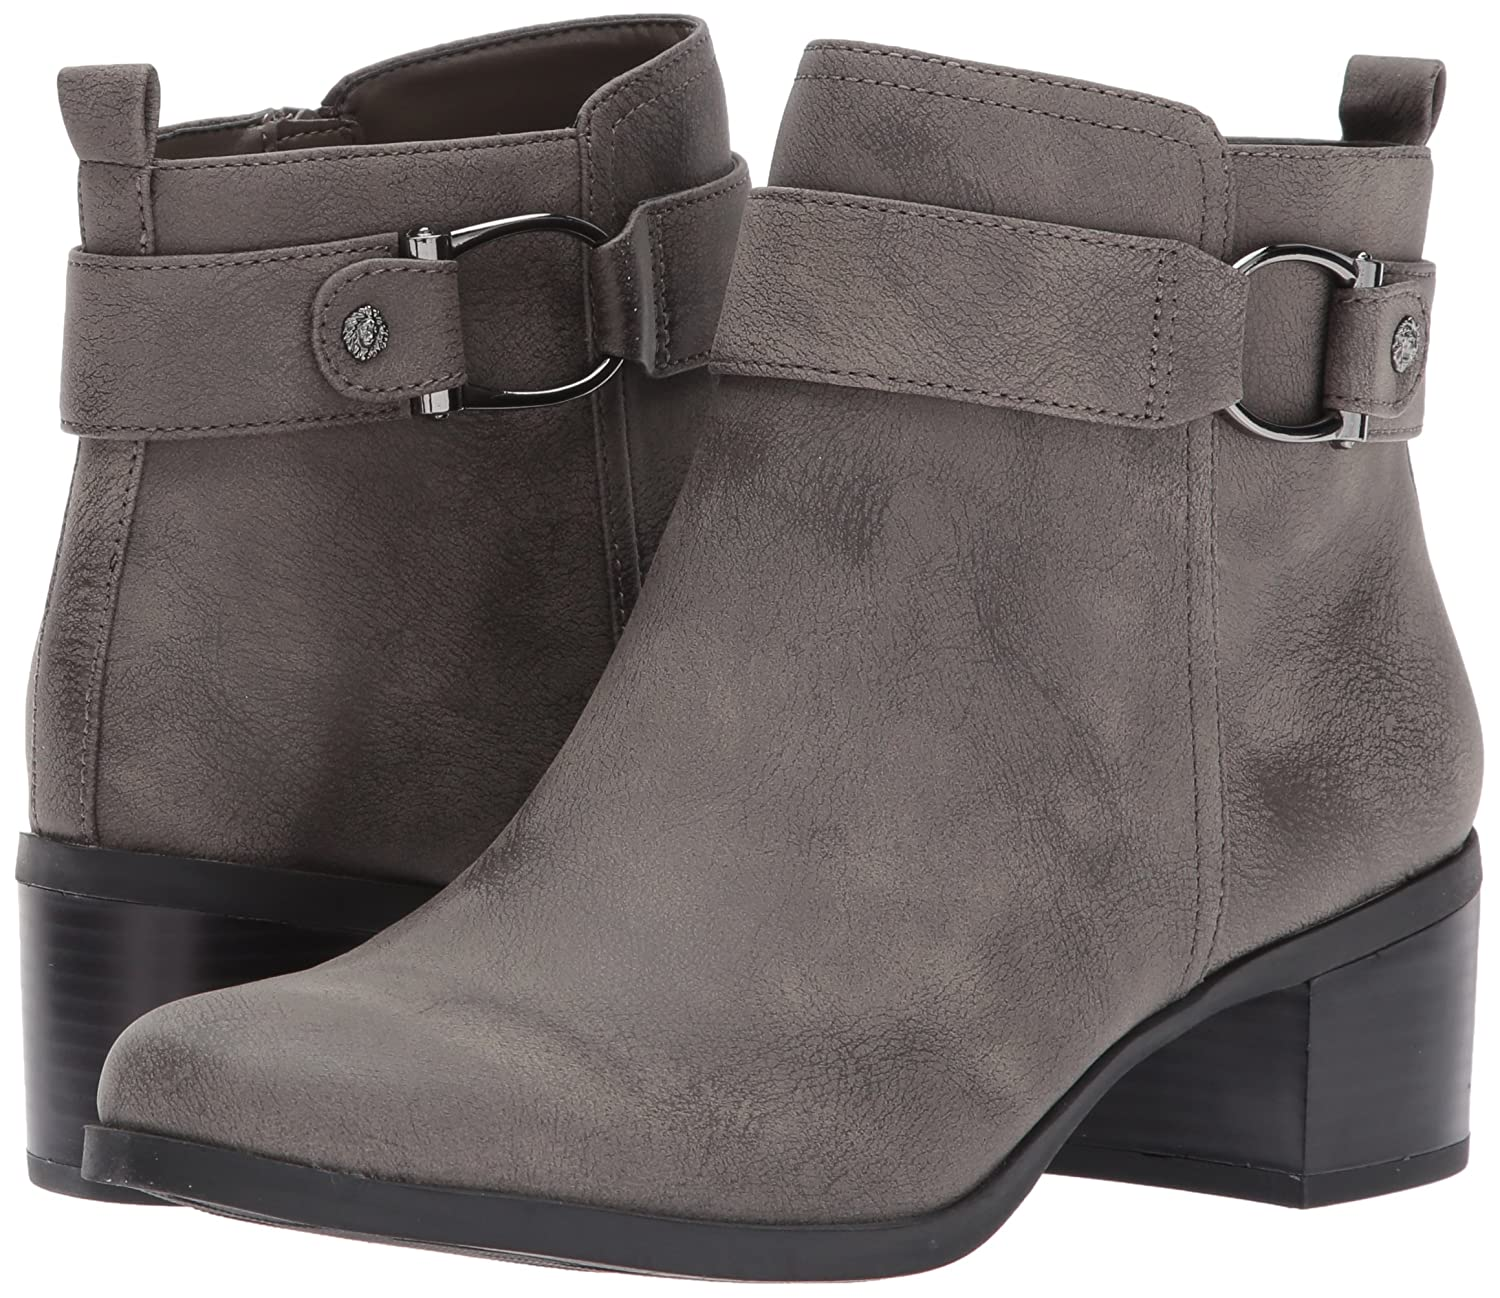 AK Anne Boot Klein Sport Women's Jeannie Synthetic Ankle Boot Anne B071L3BJ7R 9 M US|Dark Taupe e167bd